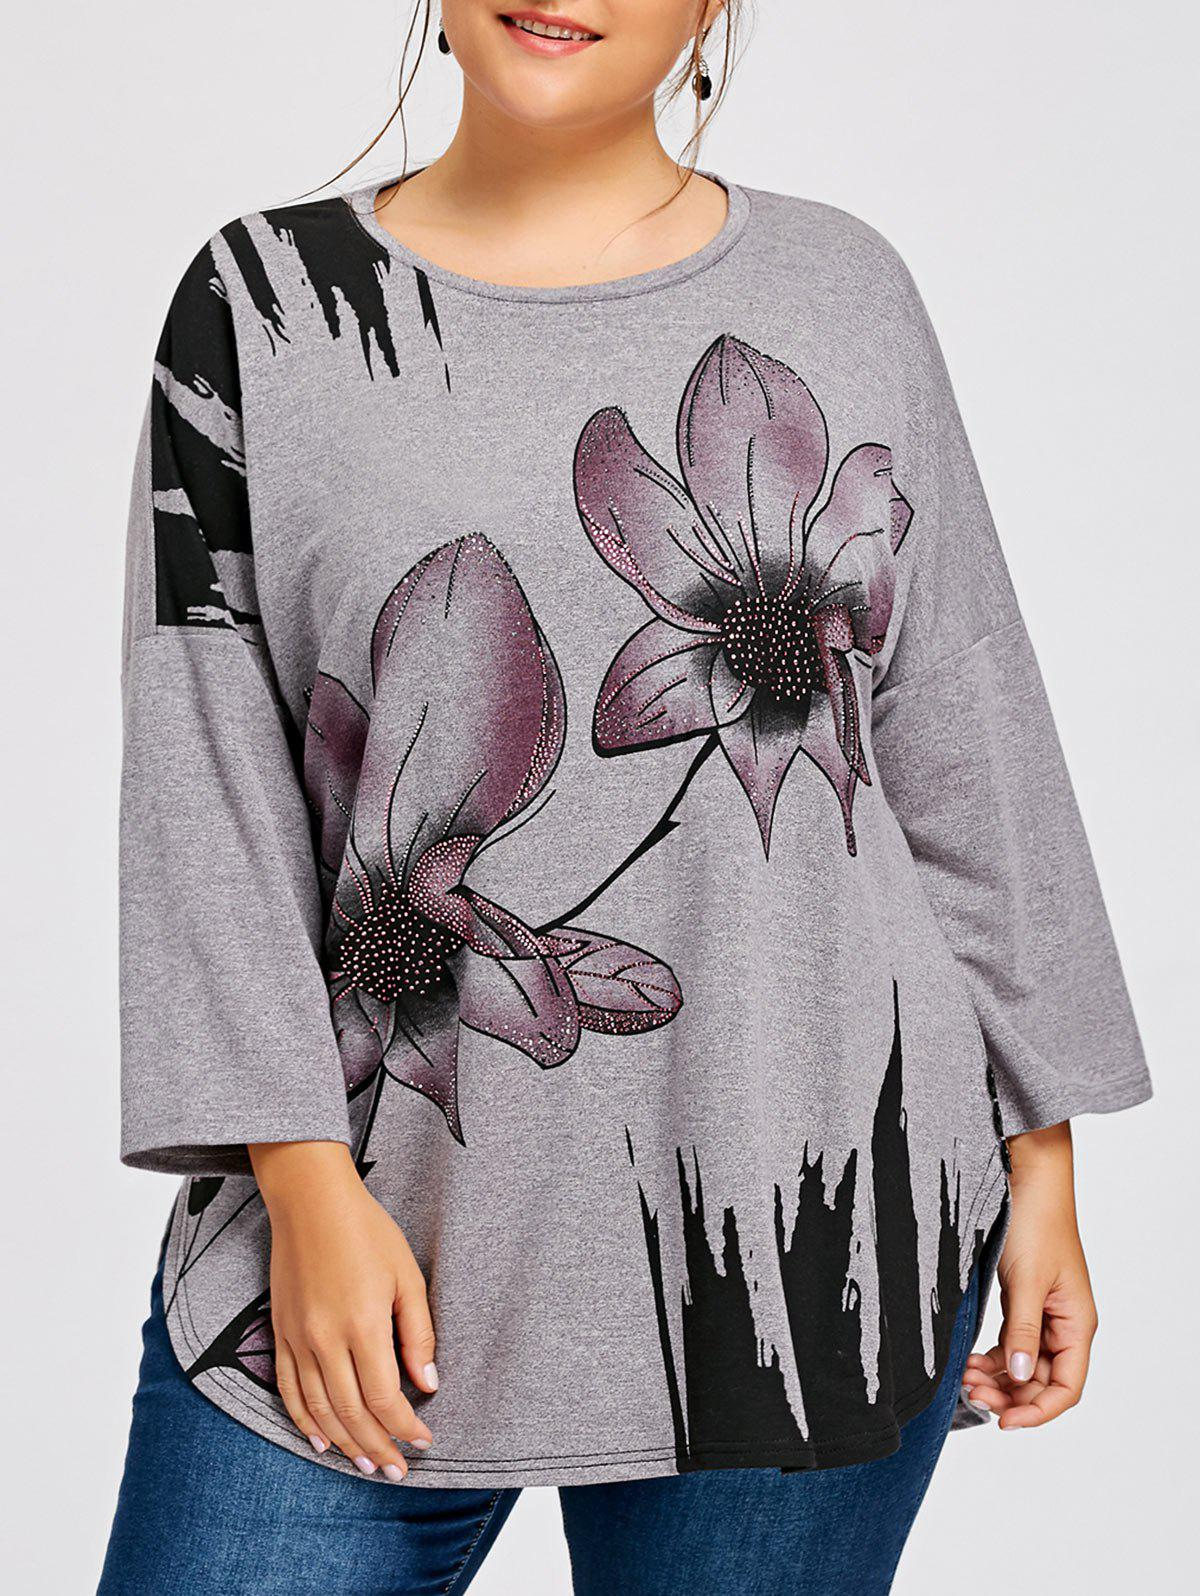 Plus Size Floral Rhinestone Embellished Drop Shoulder T-shirtWOMEN<br><br>Size: 2XL; Color: COLORMIX; Material: Polyester,Spandex; Shirt Length: Long; Sleeve Length: Full; Collar: Round Neck; Style: Fashion; Season: Fall,Spring; Embellishment: Rhinestone; Pattern Type: Floral; Weight: 0.3500kg; Package Contents: 1 x T-shirt;